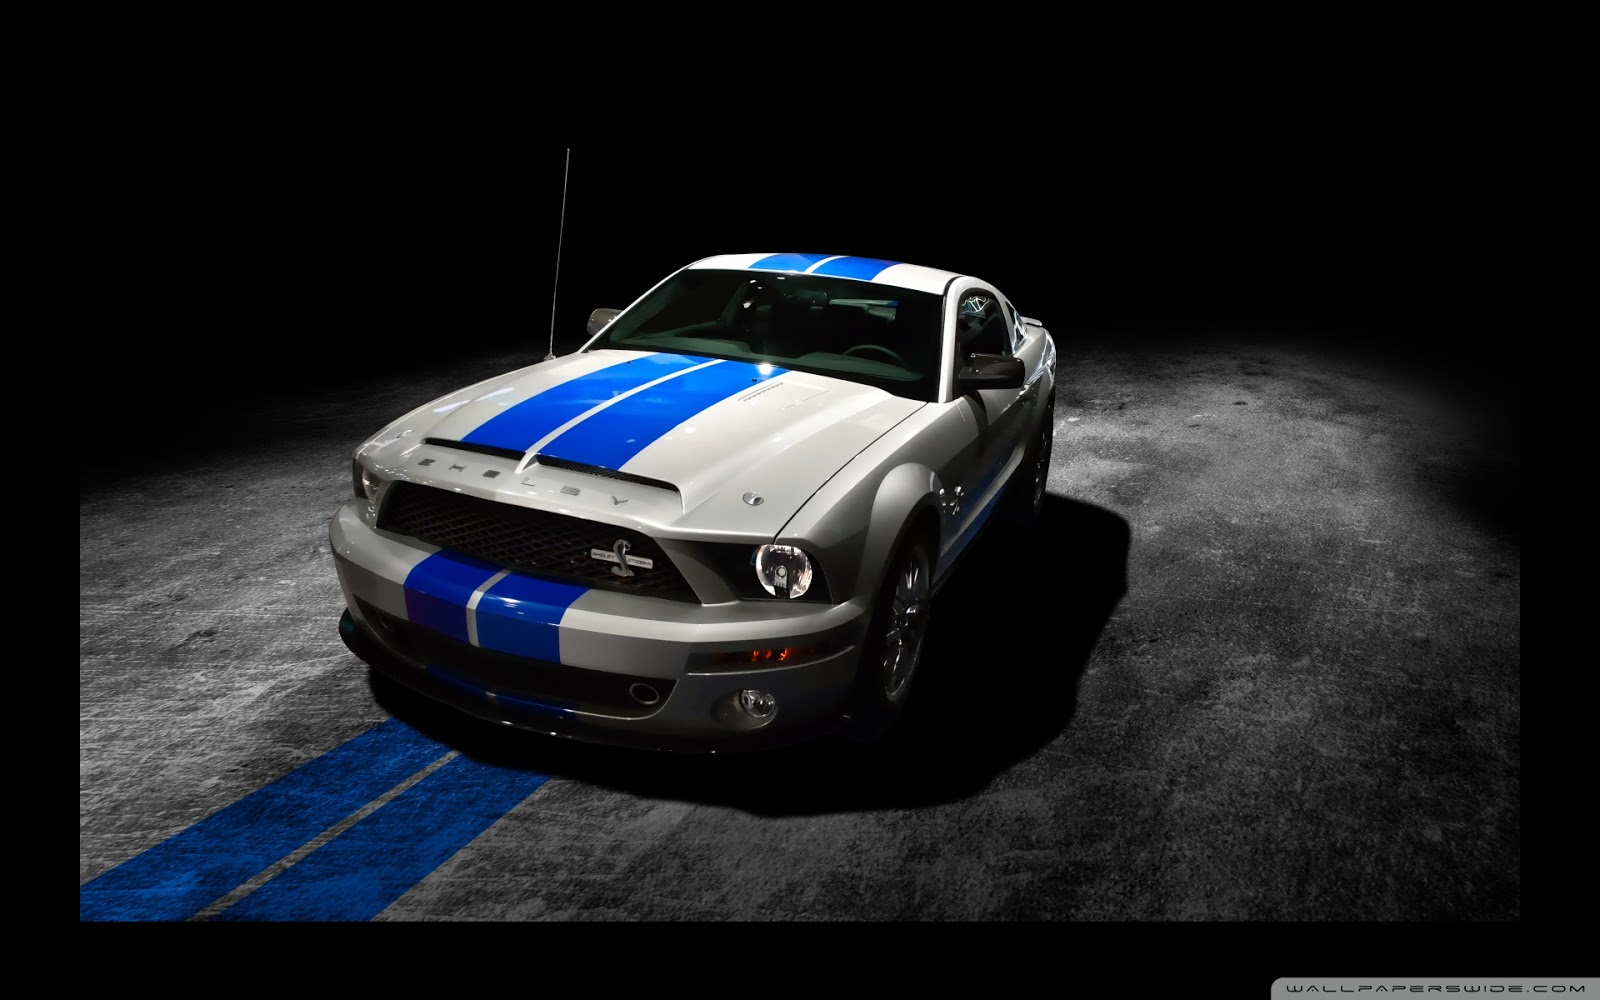 Cars Wallpapers: HD Wallpapers Collection: Hot Cars Wallpaper